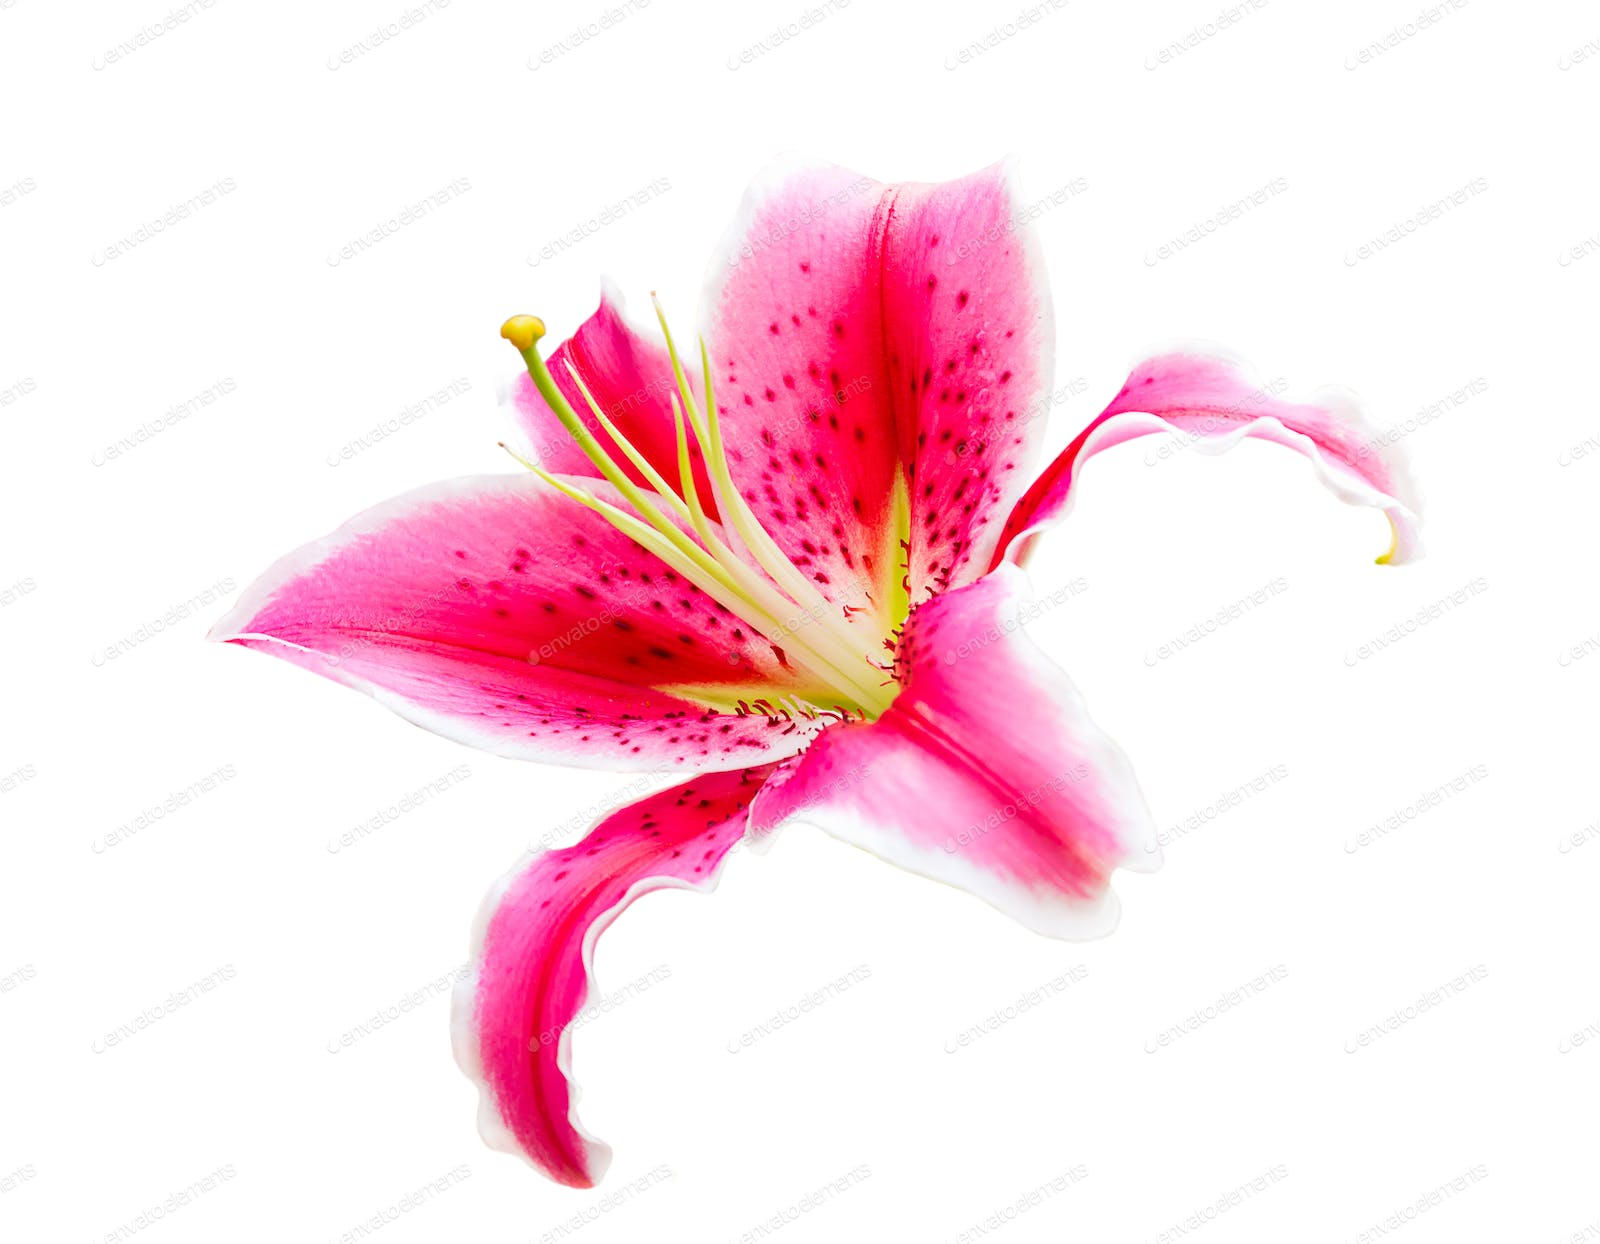 Pink Lily Flower On White Photo By Stoonn On Envato Elements